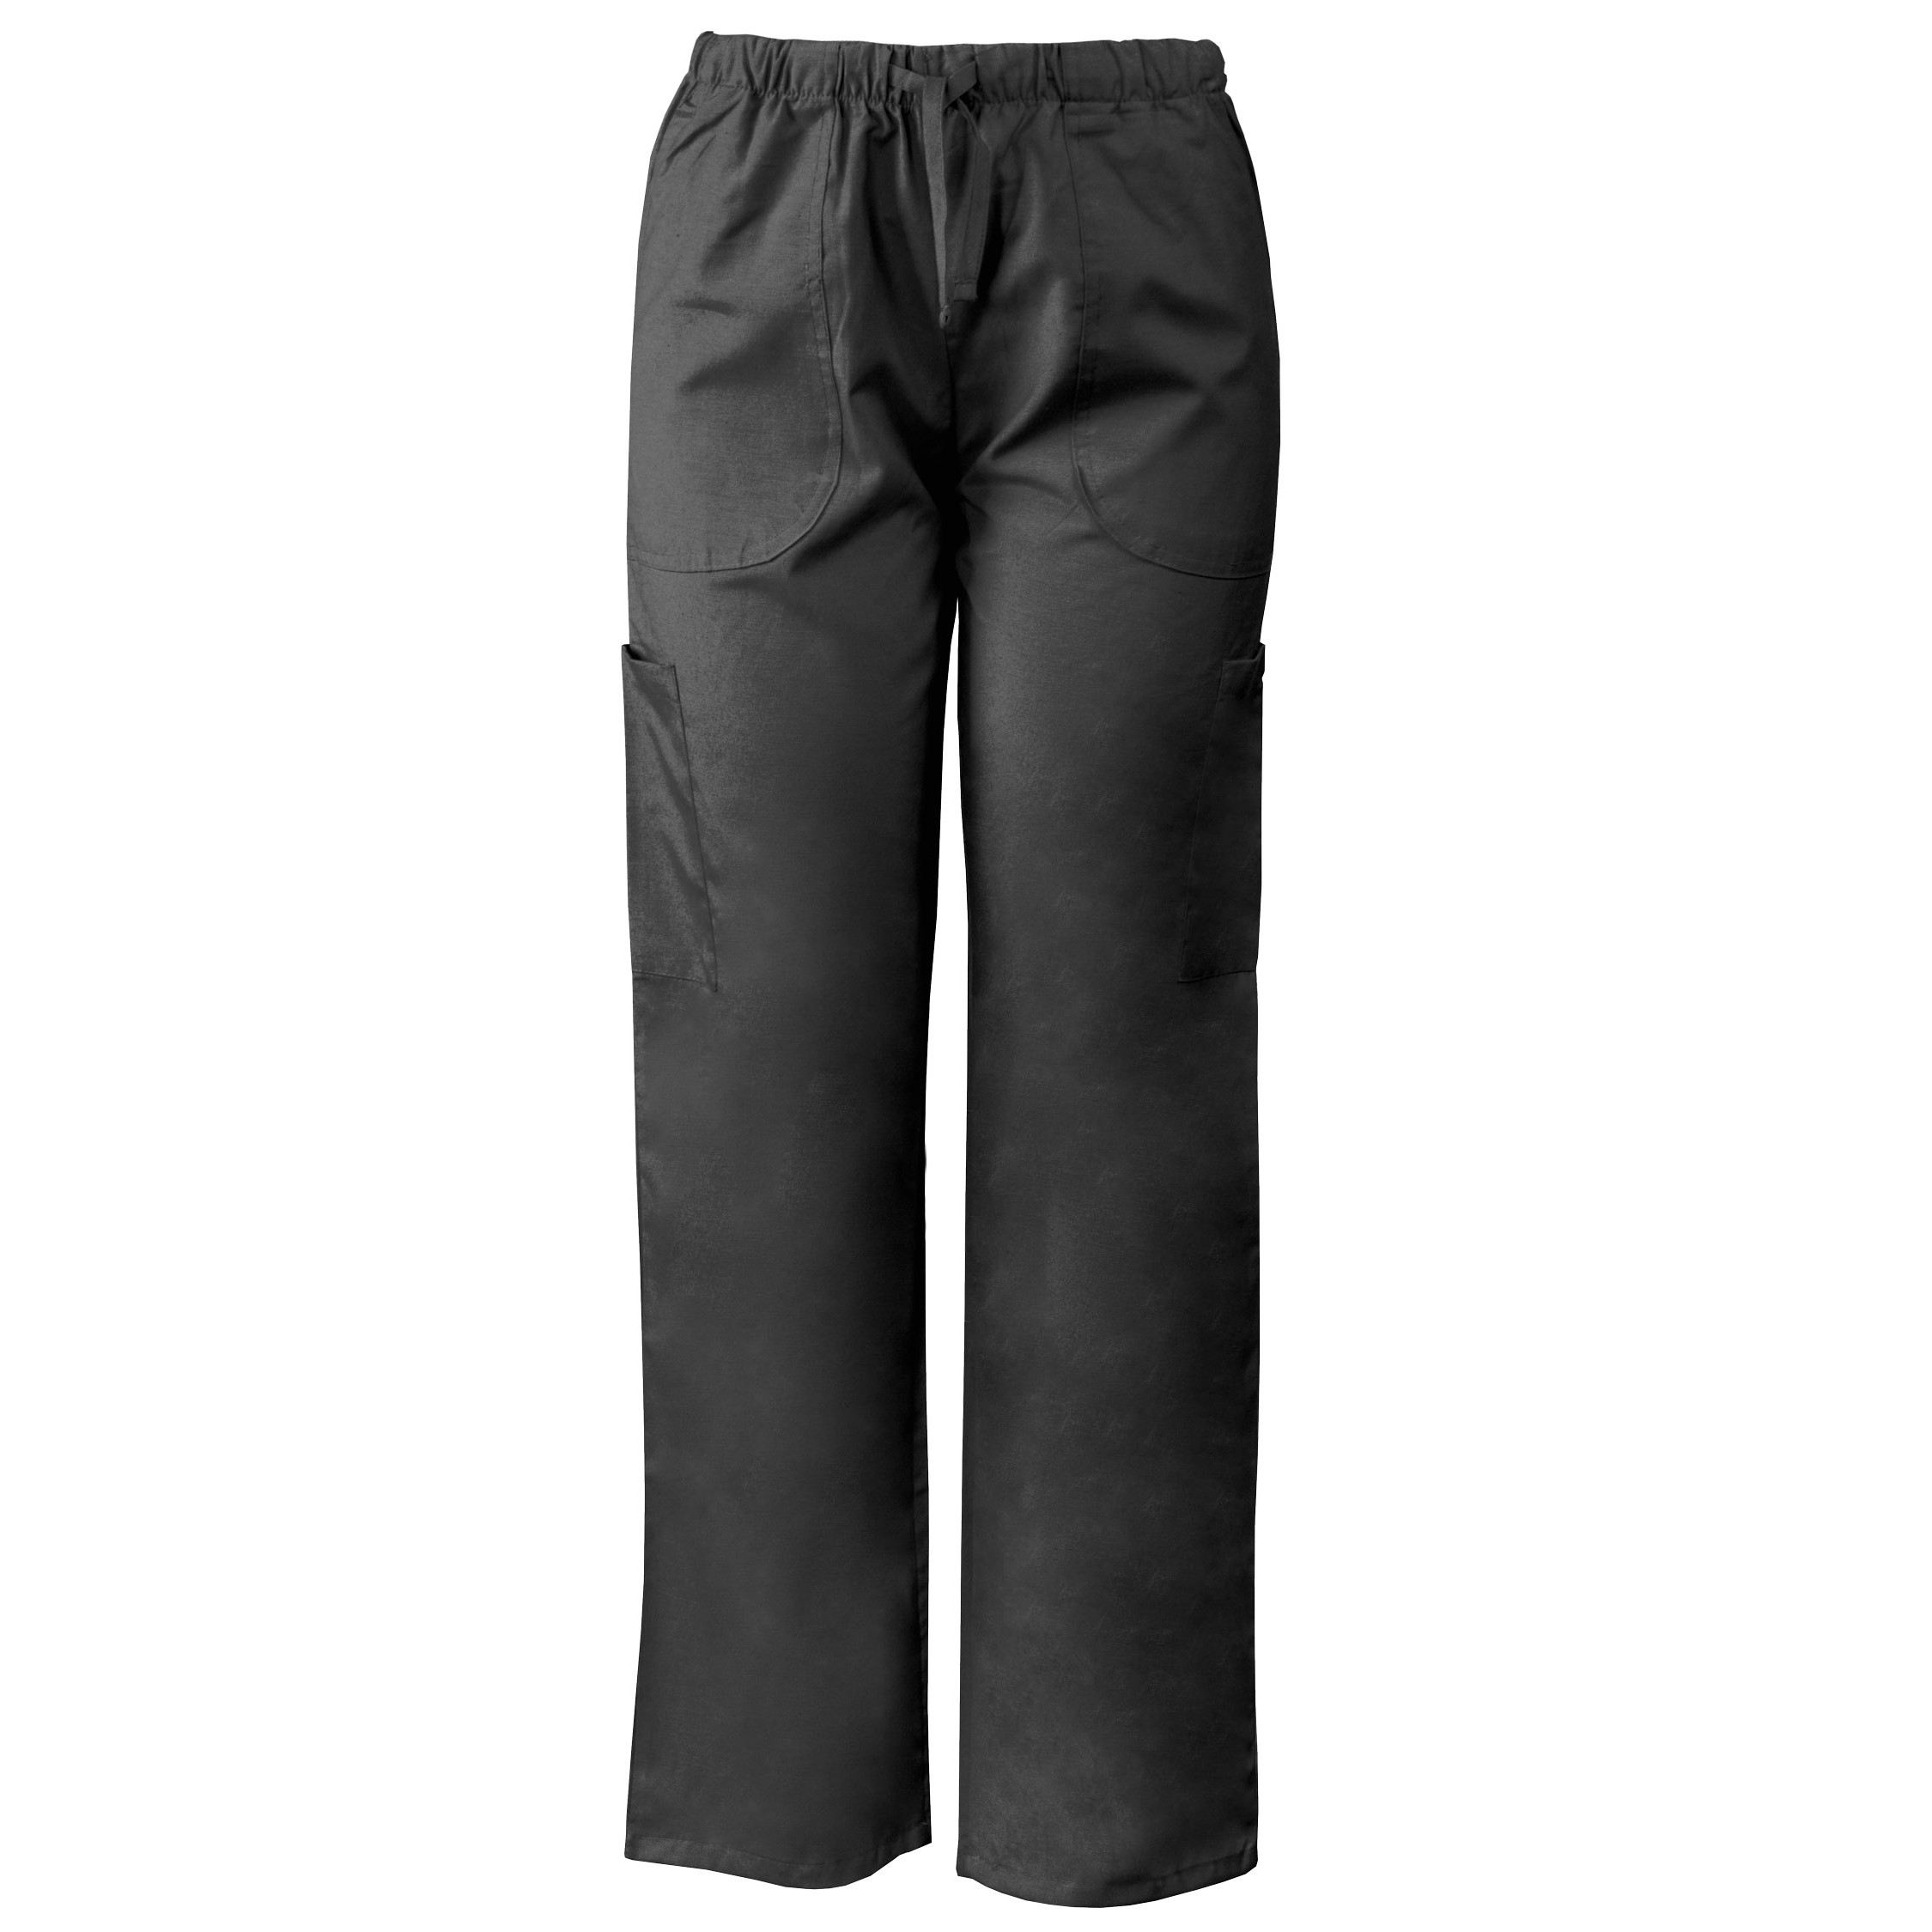 165cfe833ce Lightweight Scrubs Pants with Elastic & Drawstring Waistband, Cargo Pockets.  Display Gallery Item 1 ...